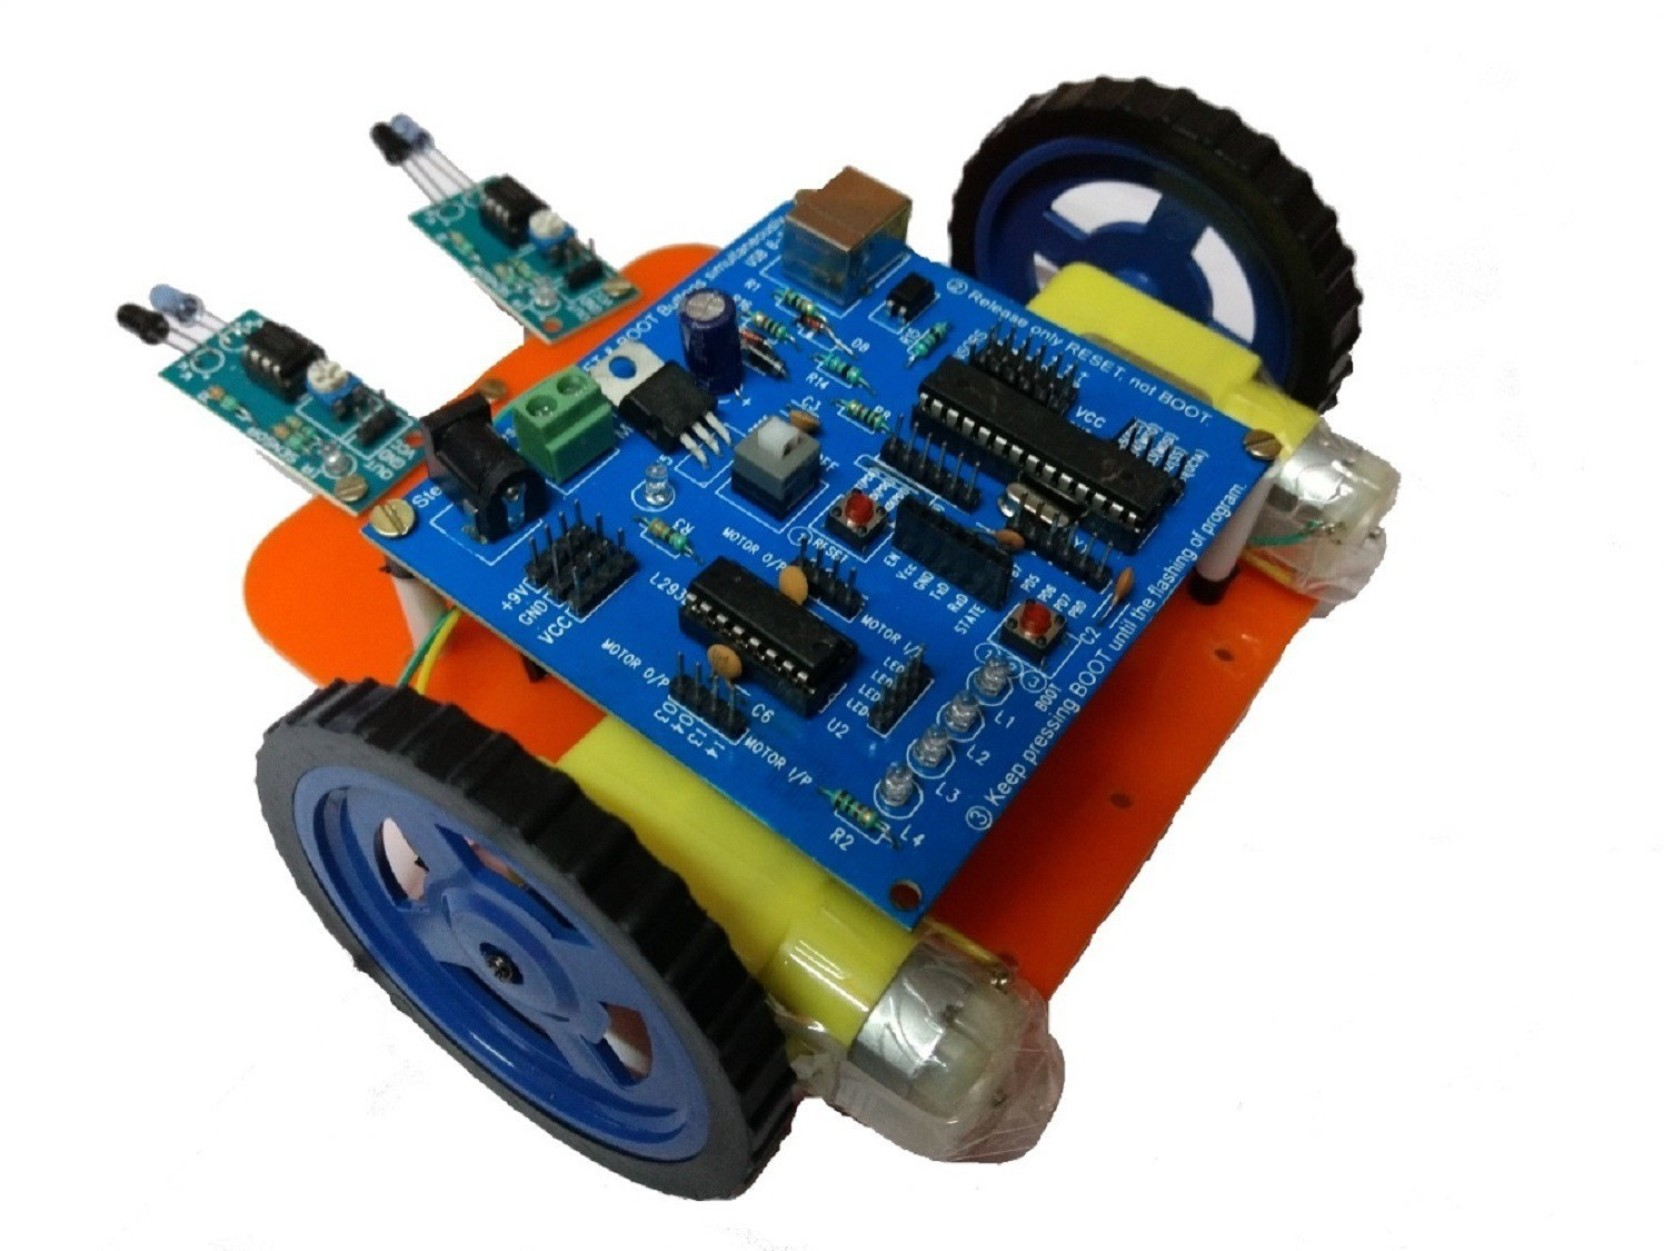 Embeddinator Line Follower Robotic Diy Kit Programmable Price In Driver On Robot Add To Cart